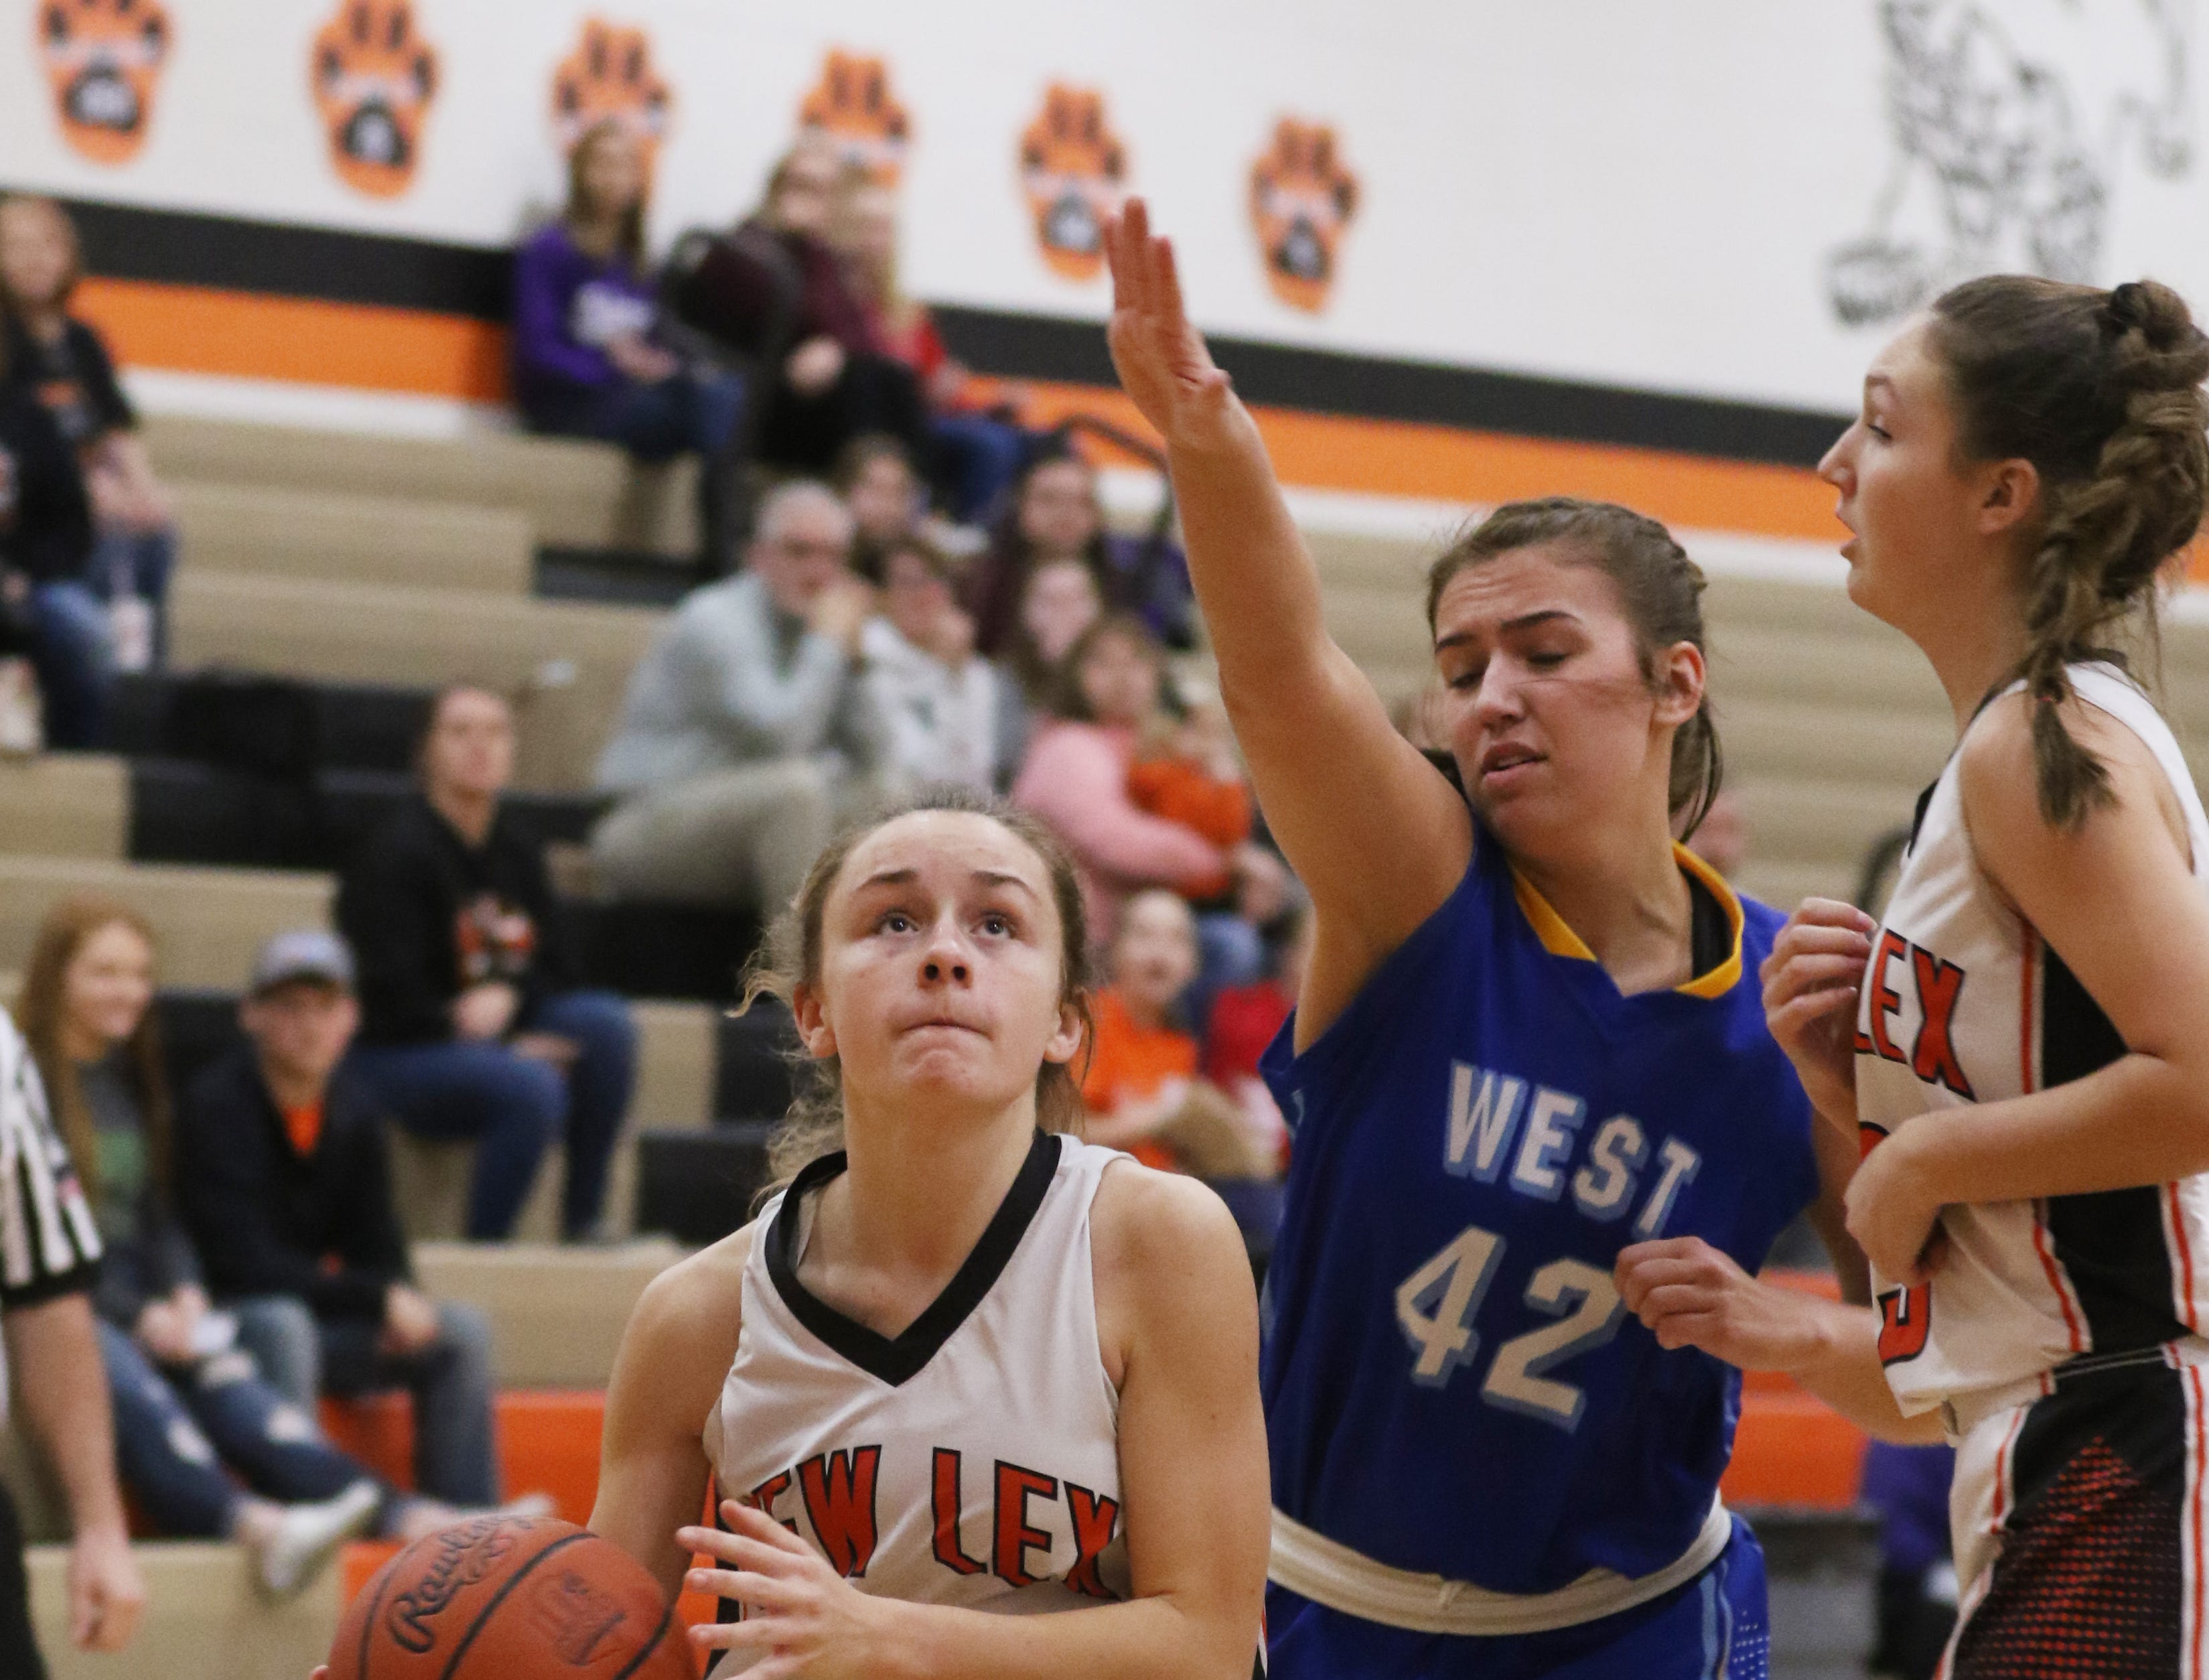 New Lexington's Emma Abrams drives to the hoop against West Muskingum.